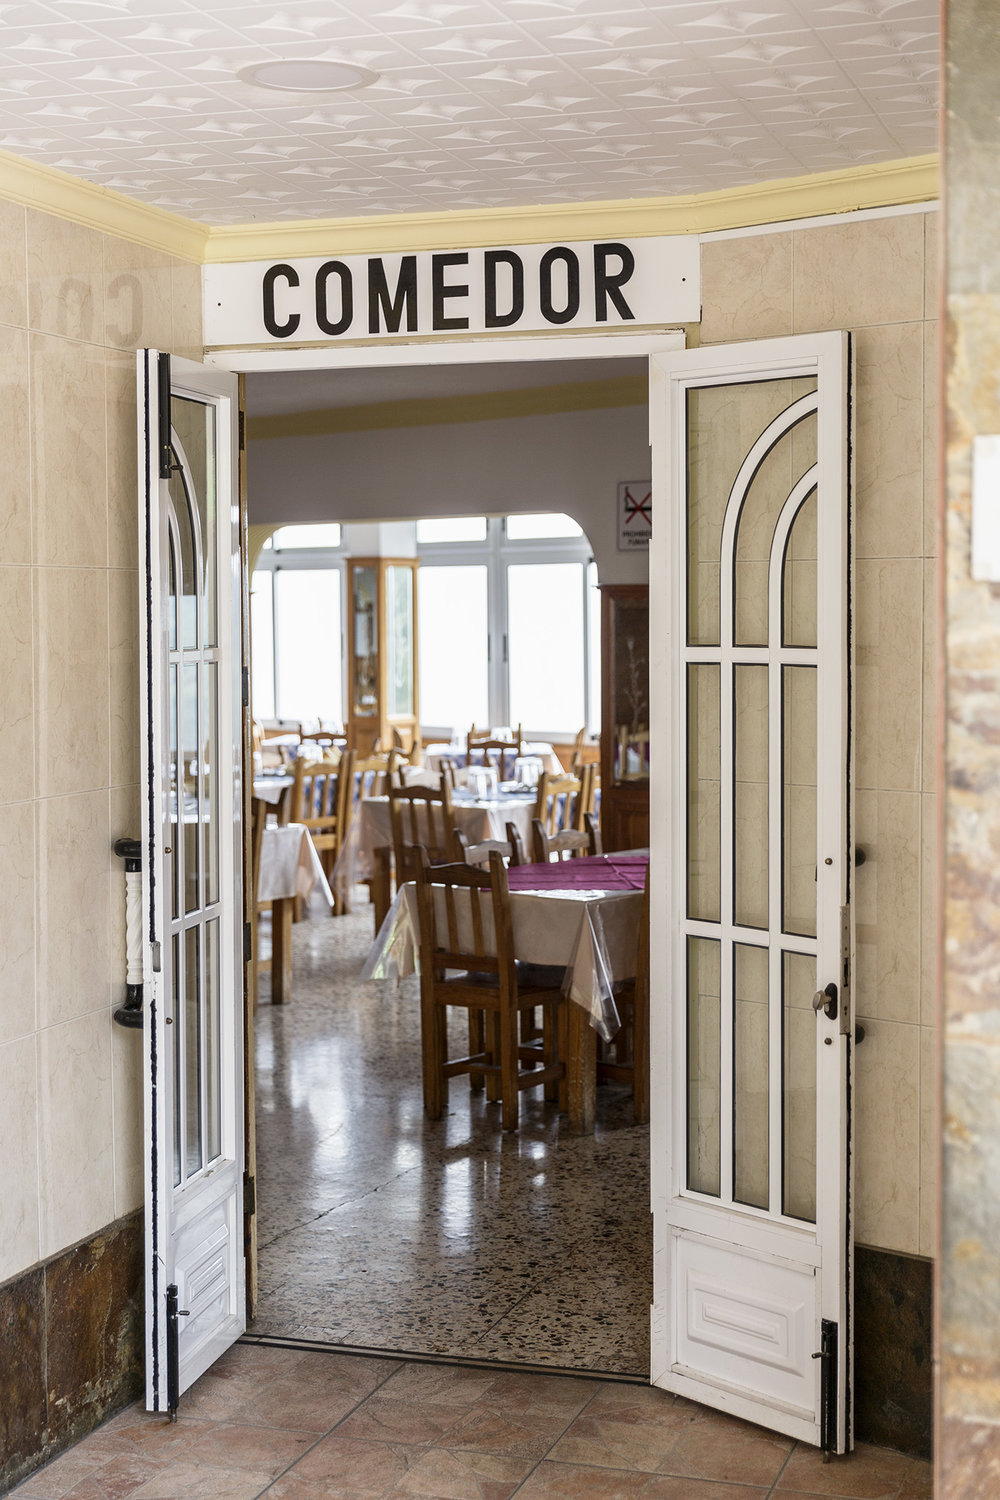 A comedor along the highway in the Canary Islands by Rebecca Stumpf, Denver Boulder Colorado Editorial and Commercial Photographer.